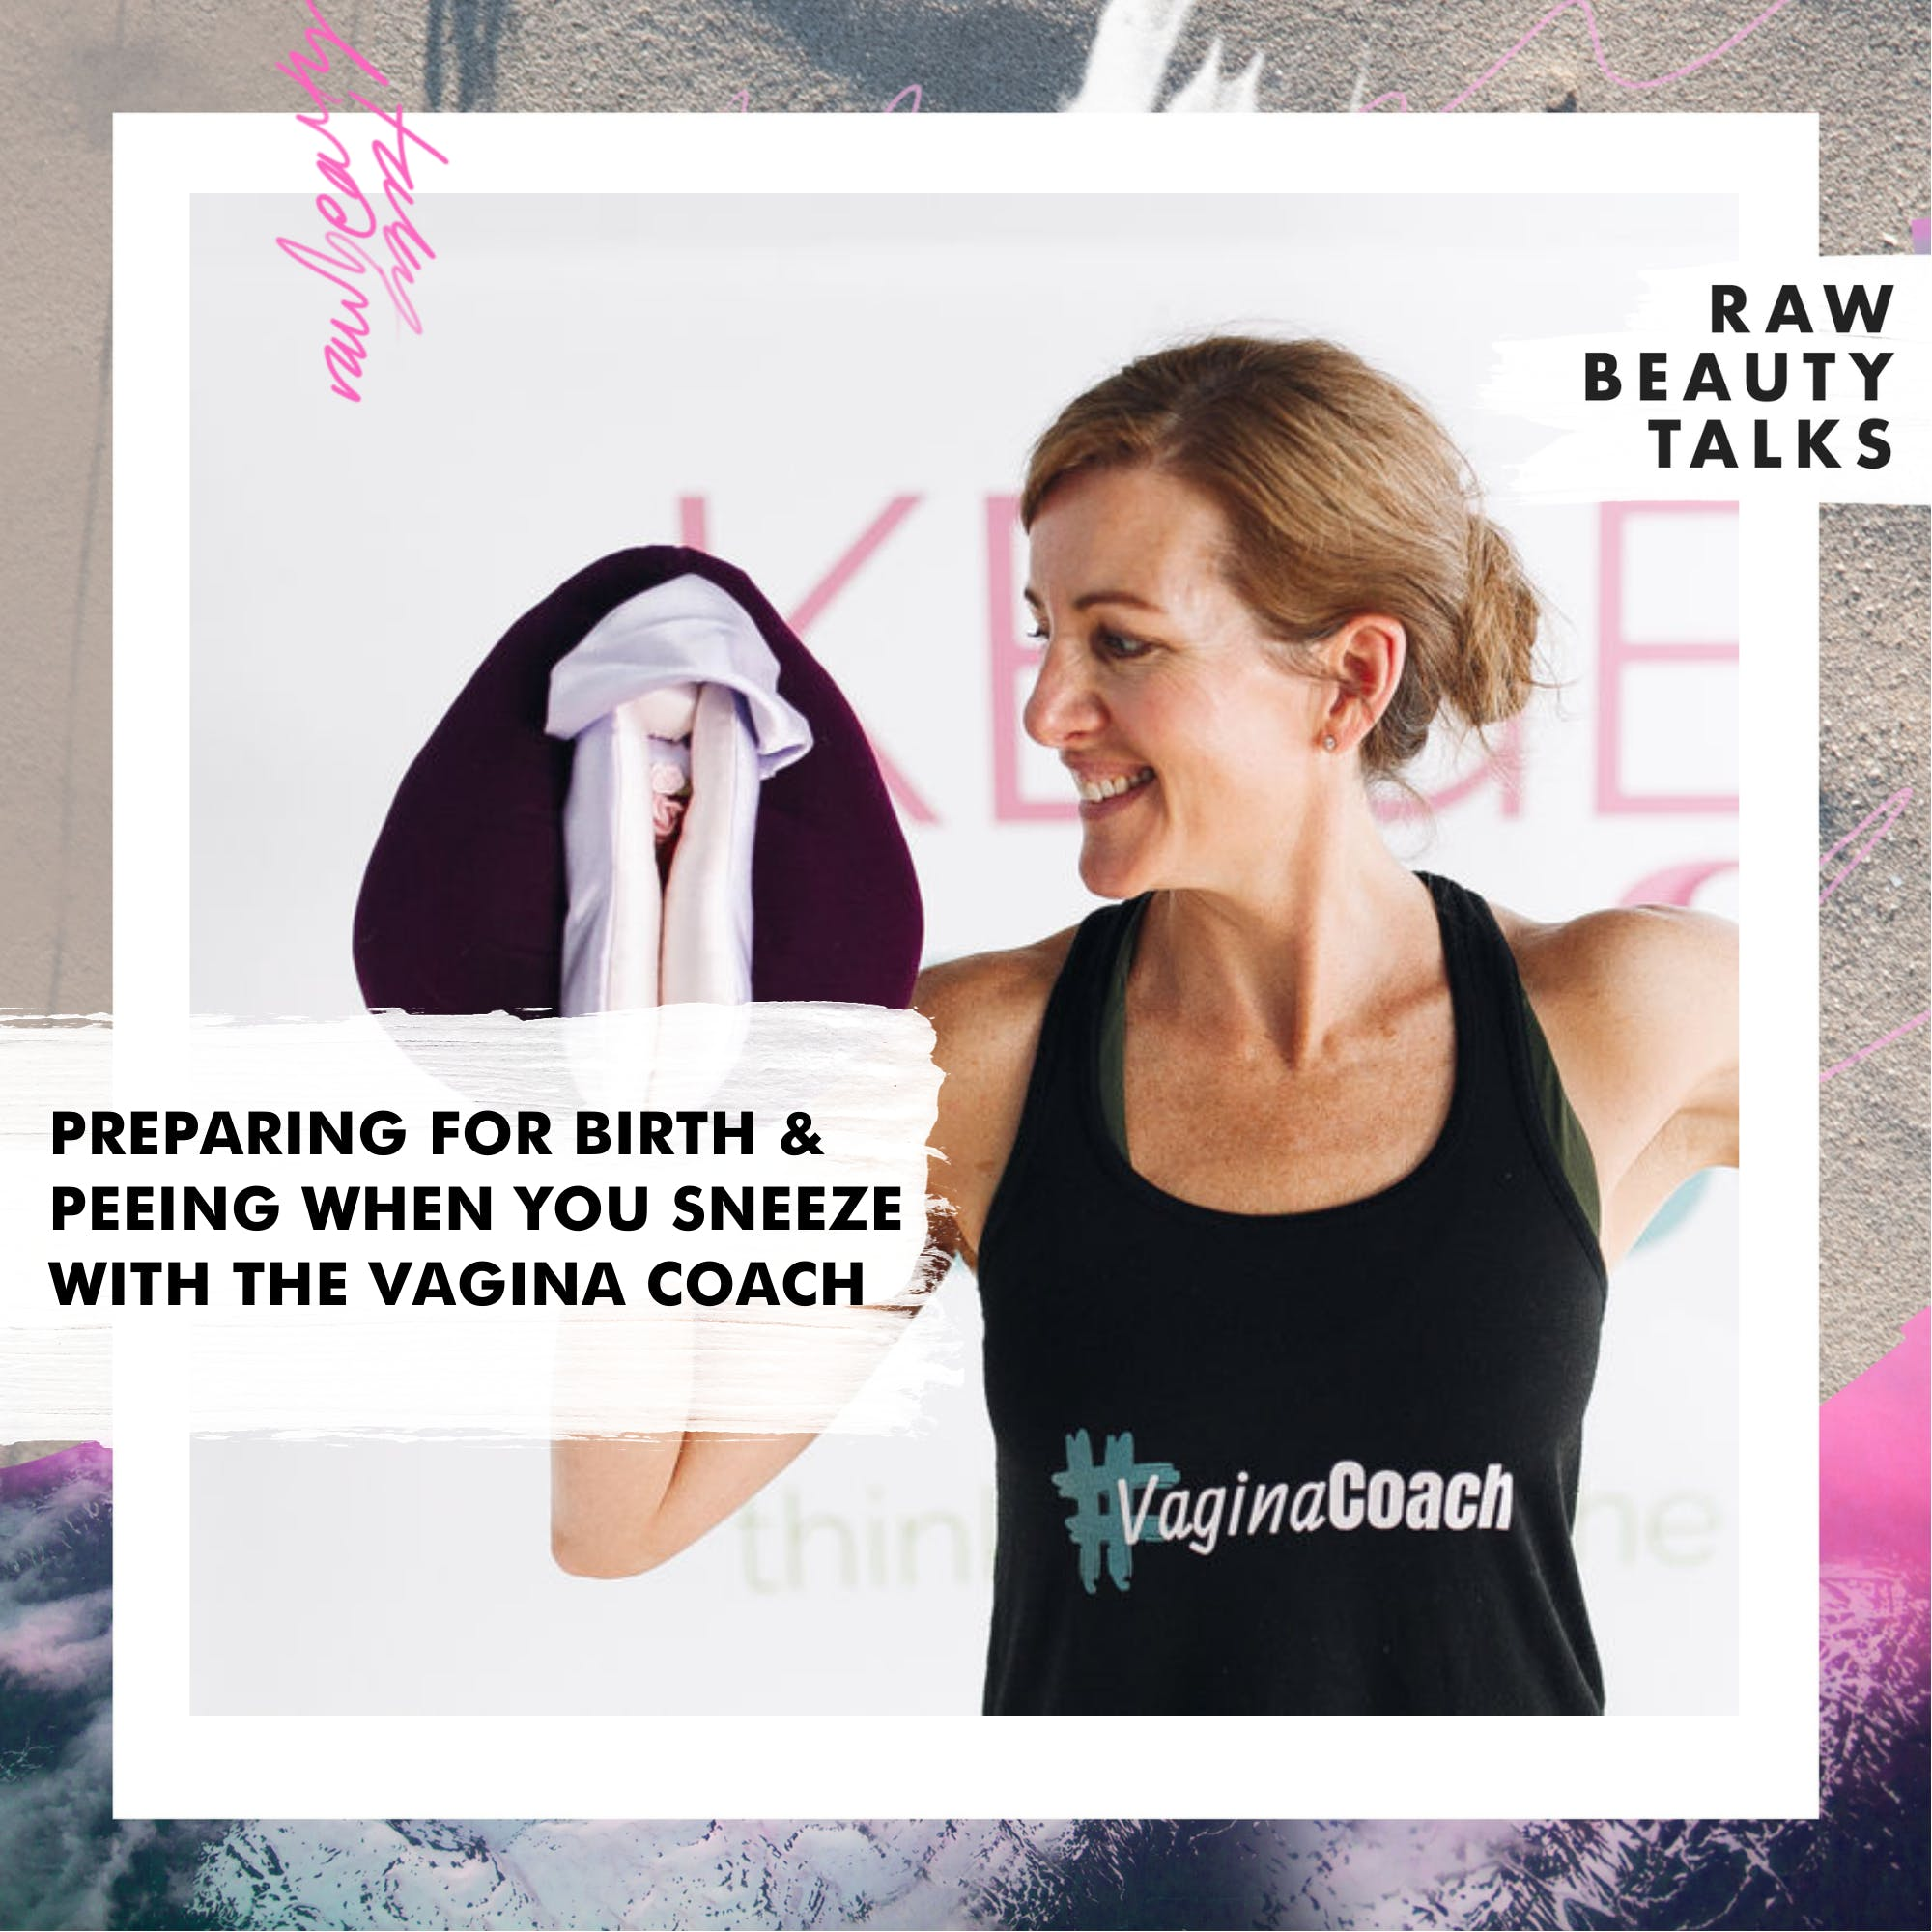 Preparing for Birth & Peeing When You Sneeze with the Vagina Coach